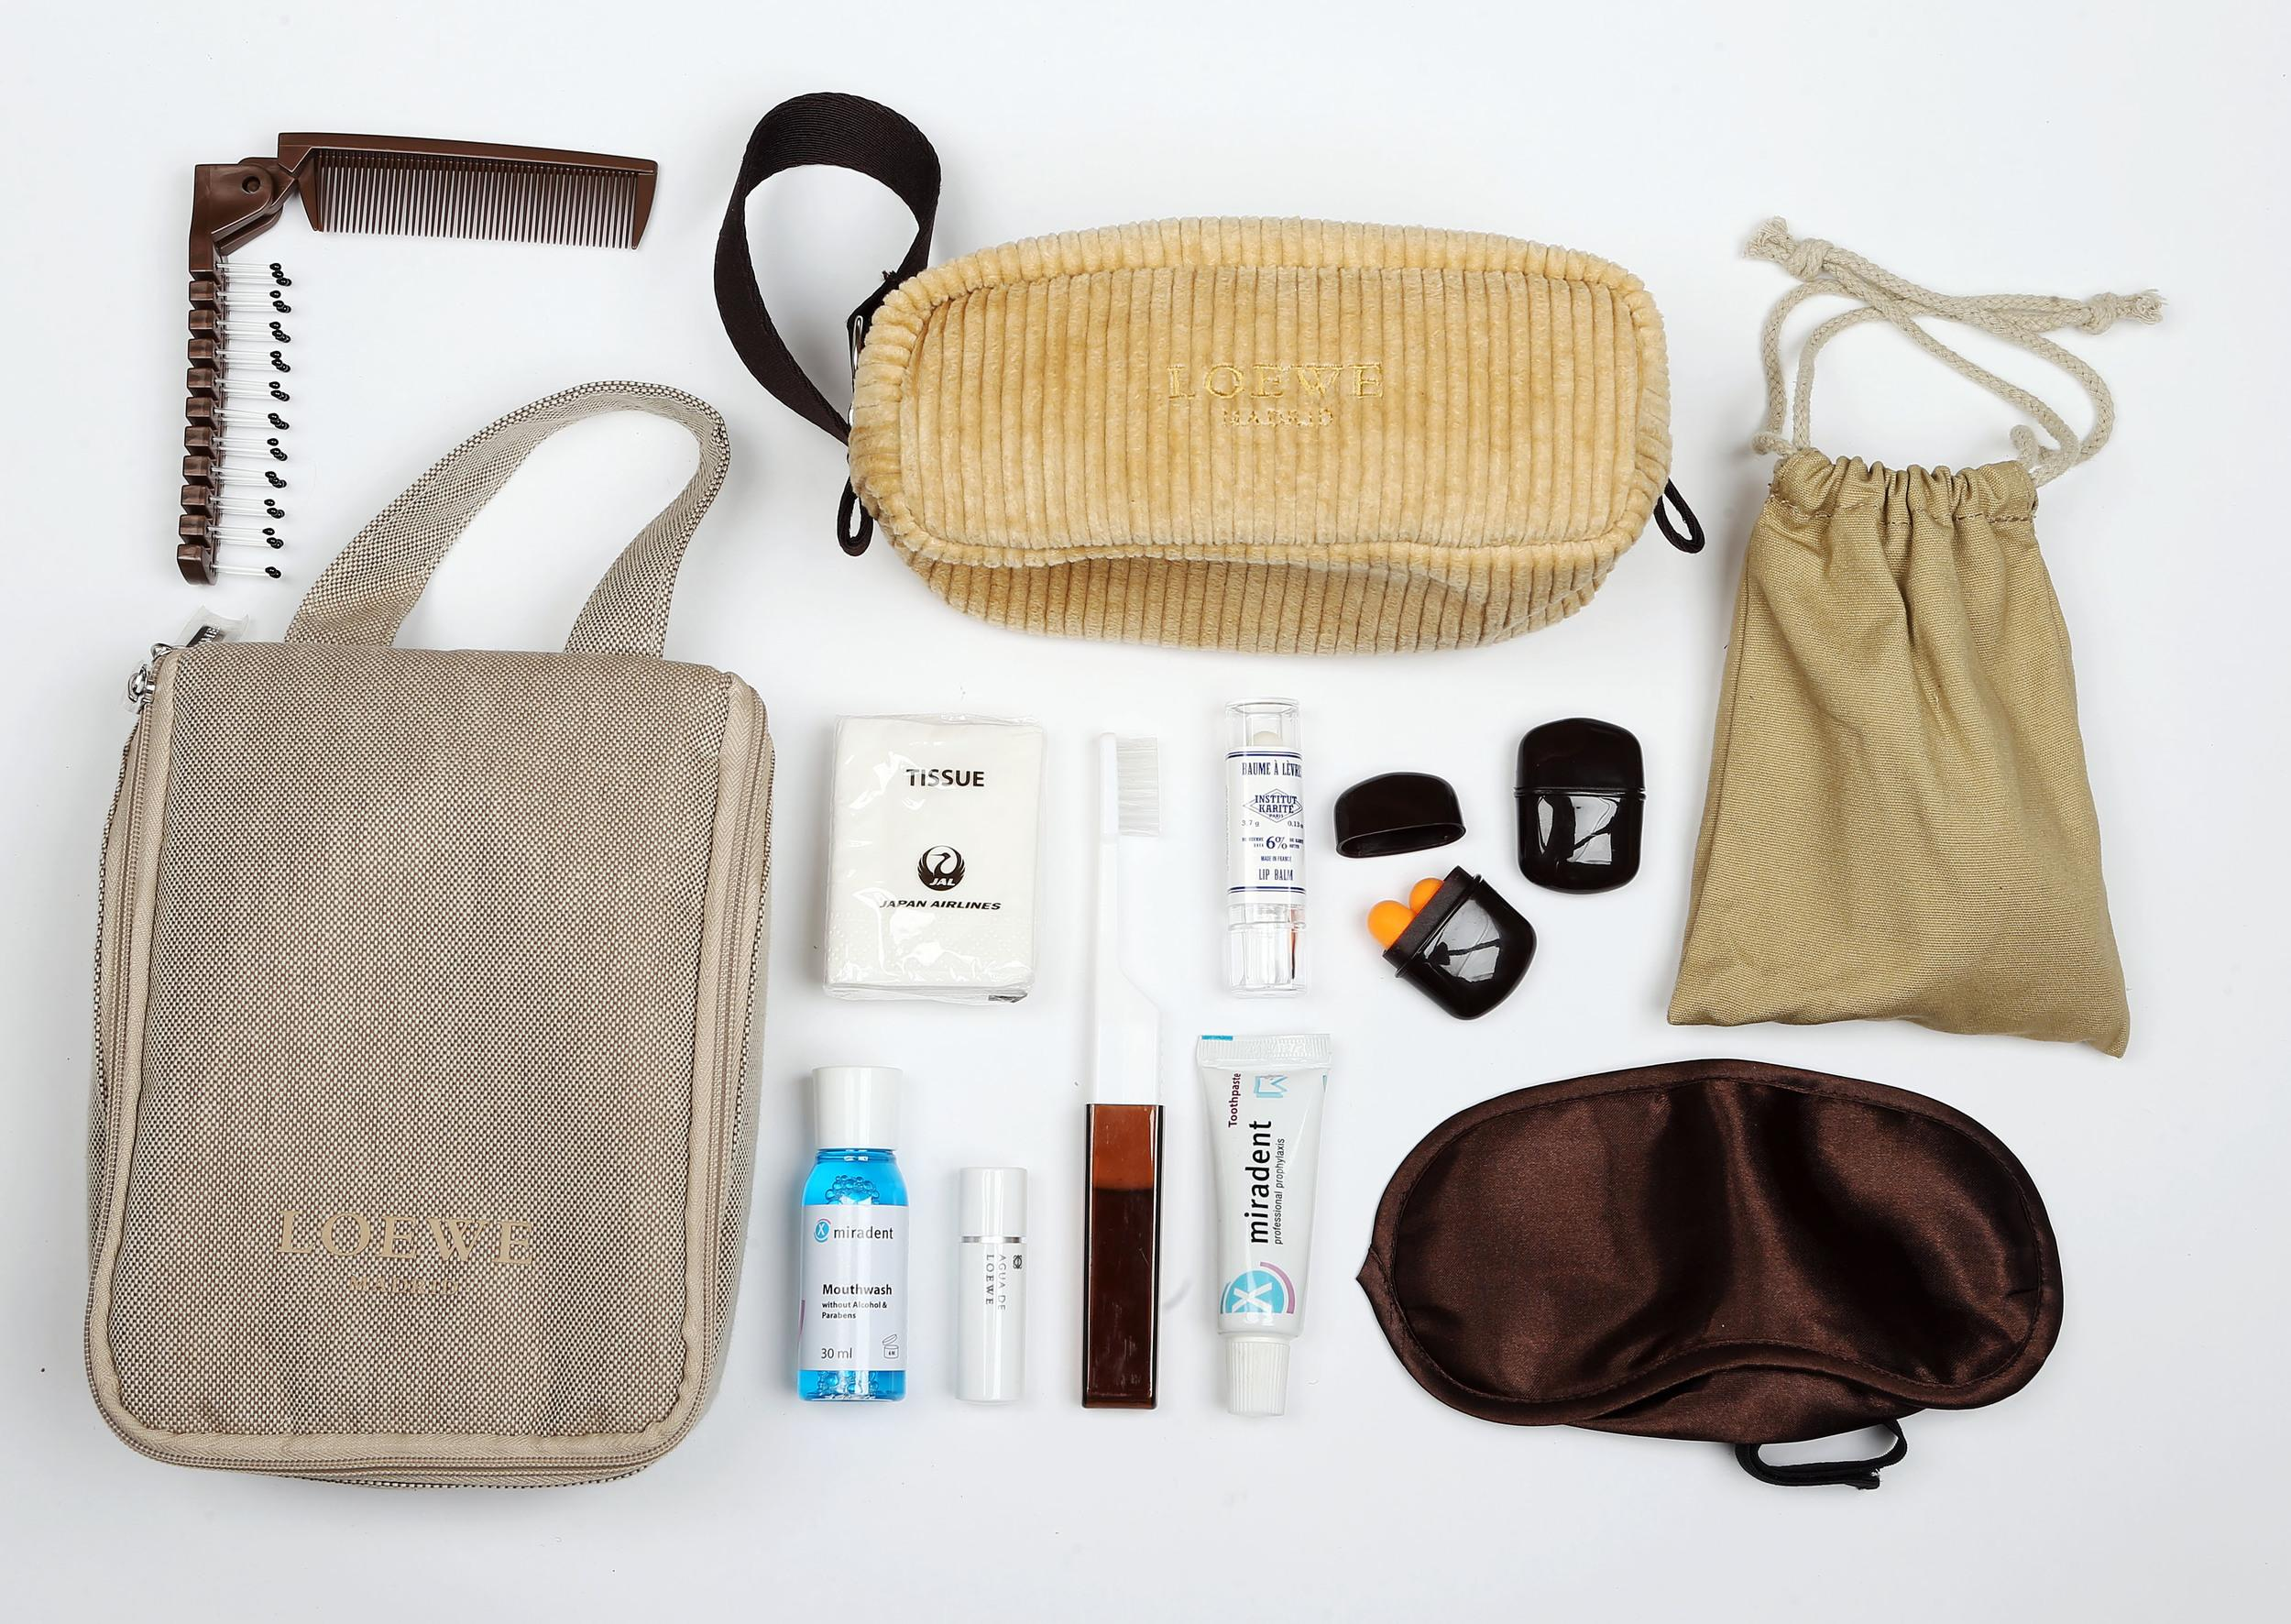 """<p><strong>What do you get?</strong> The outbound kit is a beige that whispers """"high net worth"""" and the items inside are a rich, dark-chocolate brown. They include a foldable comb/brush, tissues, ear plugs, eye mask, toothbrush, toothpaste, mouthwash, unisex Loewe goodies (lip balm, moisture mask and hand towel. Agua de Loewe fragranced).<br /> Inbound, the kit is a rich, beige corduroy with a chocolate brown strap and contains an eye mask, ear plugs, tissues, foldable brush/comb, toothbrush, toothpaste, mouthwash, Institut Karite lip balm, Loewe moisture mask, Japan Airlines moisture mask (think surgical mask)<br /> <strong>Best bit of the kit?</strong> The bags. JAL has thought of everything. They're beautifully engineered with an innovative zip/strap on the camel corduroy one and a hanger in the canvas bag. We're dying to see the moss-green corduroy bag. We'd book flights for it.</p>"""